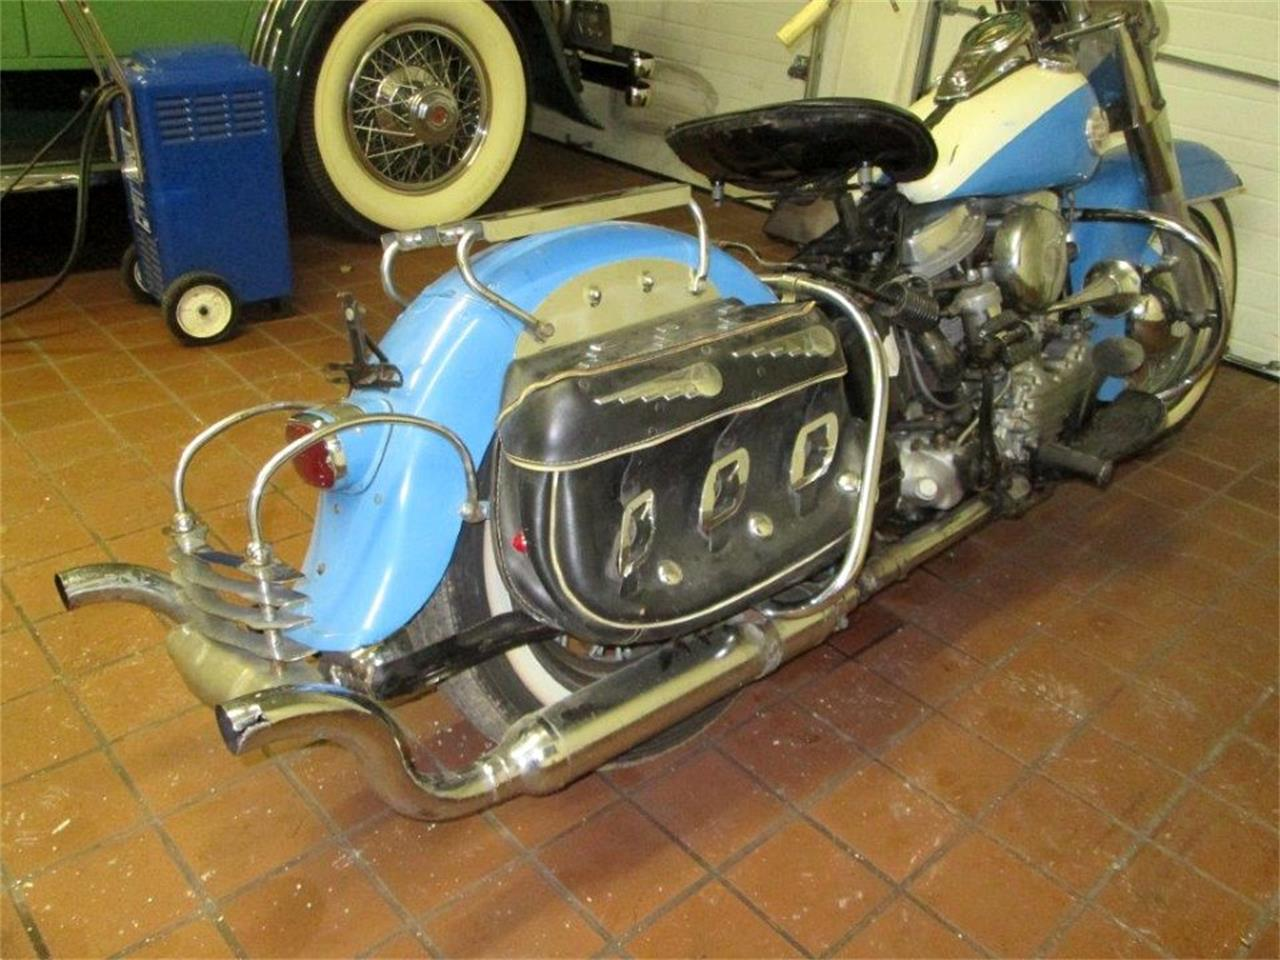 1957 Harley-Davidson FLH (CC-959362) for sale in Providence, Rhode Island